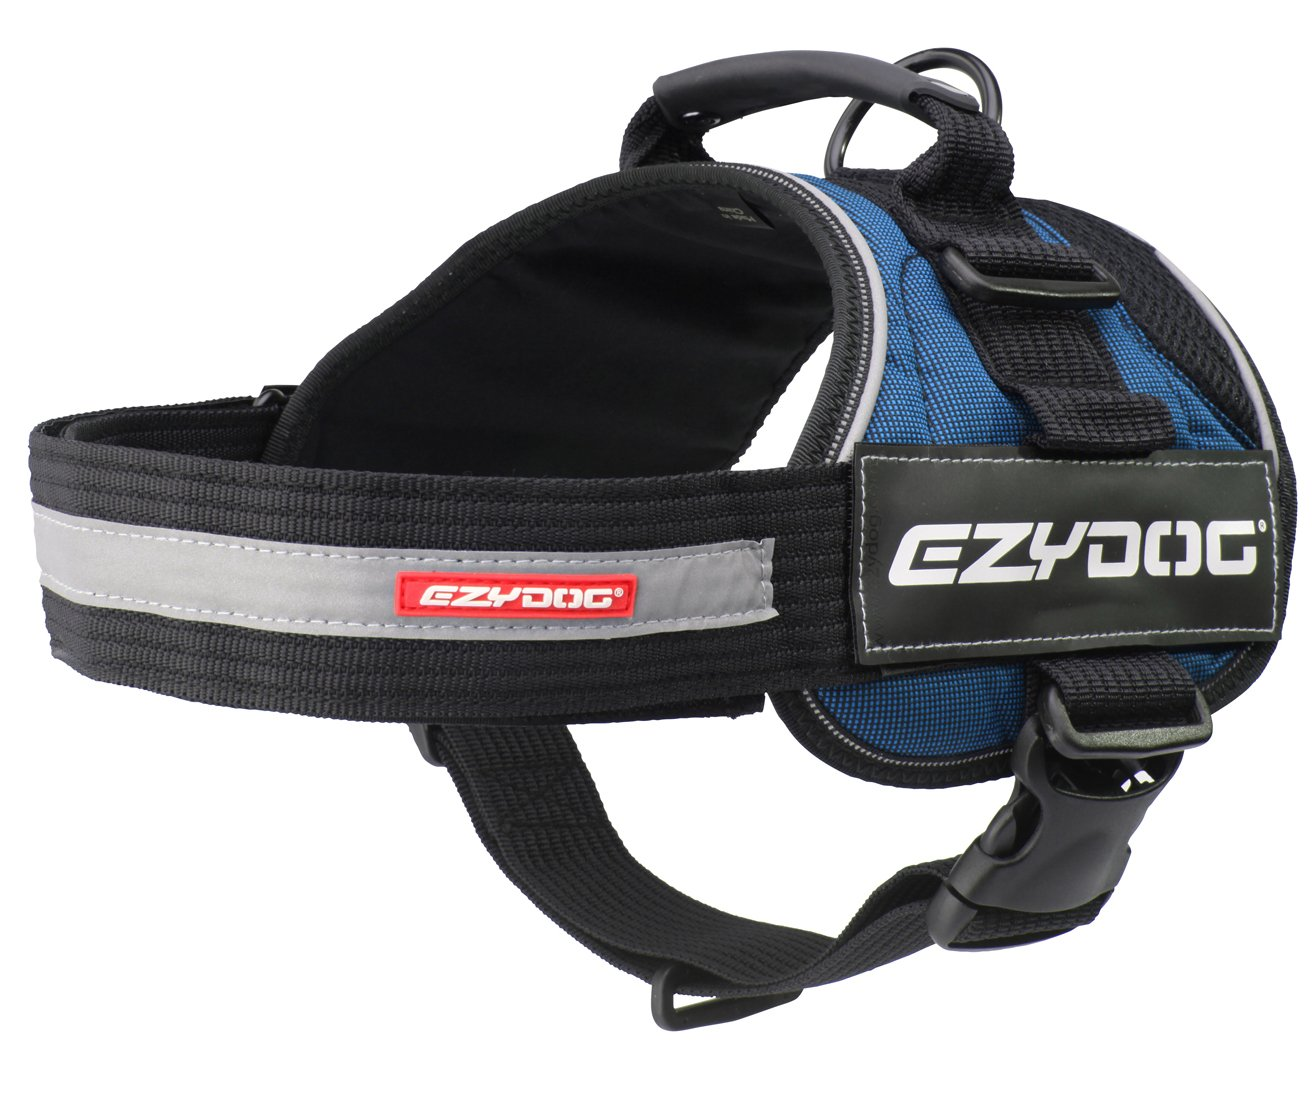 bluee Medium bluee Medium EzyDog Congreen Trail-Ready Outdoor Adjustable Dog Harness Perfect for Hiking, Walking, and Doubles as a Service Dog Vest Superior Comfort Design with a Durable Traffic Handle (Medium, bluee)